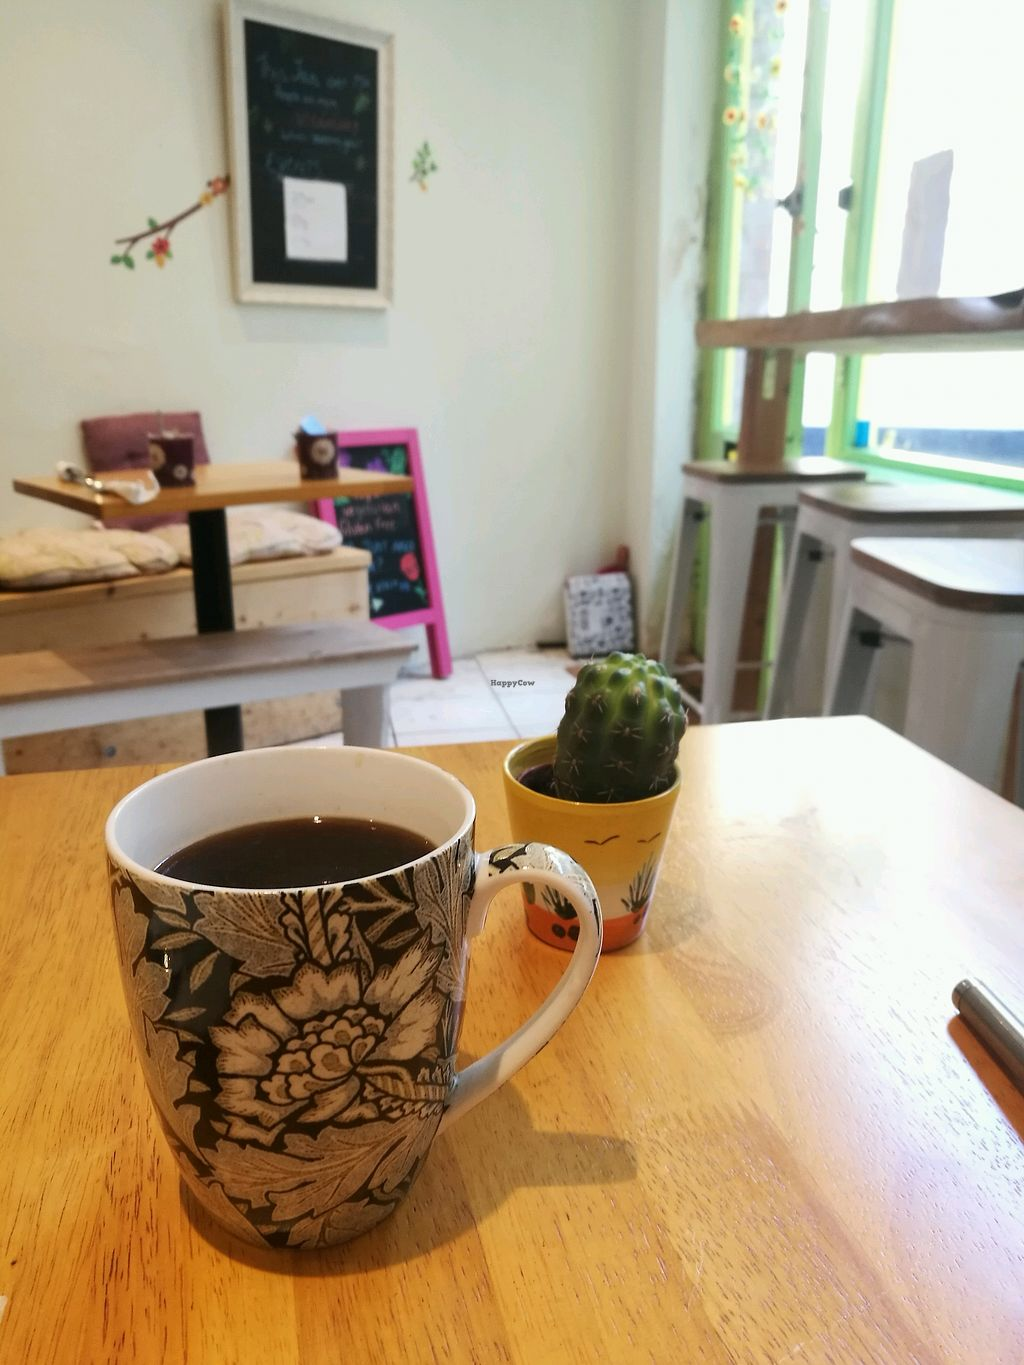 """Photo of Purity Petal Cafe  by <a href=""""/members/profile/JemmaStovell"""">JemmaStovell</a> <br/>Americano <br/> April 20, 2018  - <a href='/contact/abuse/image/101172/388400'>Report</a>"""